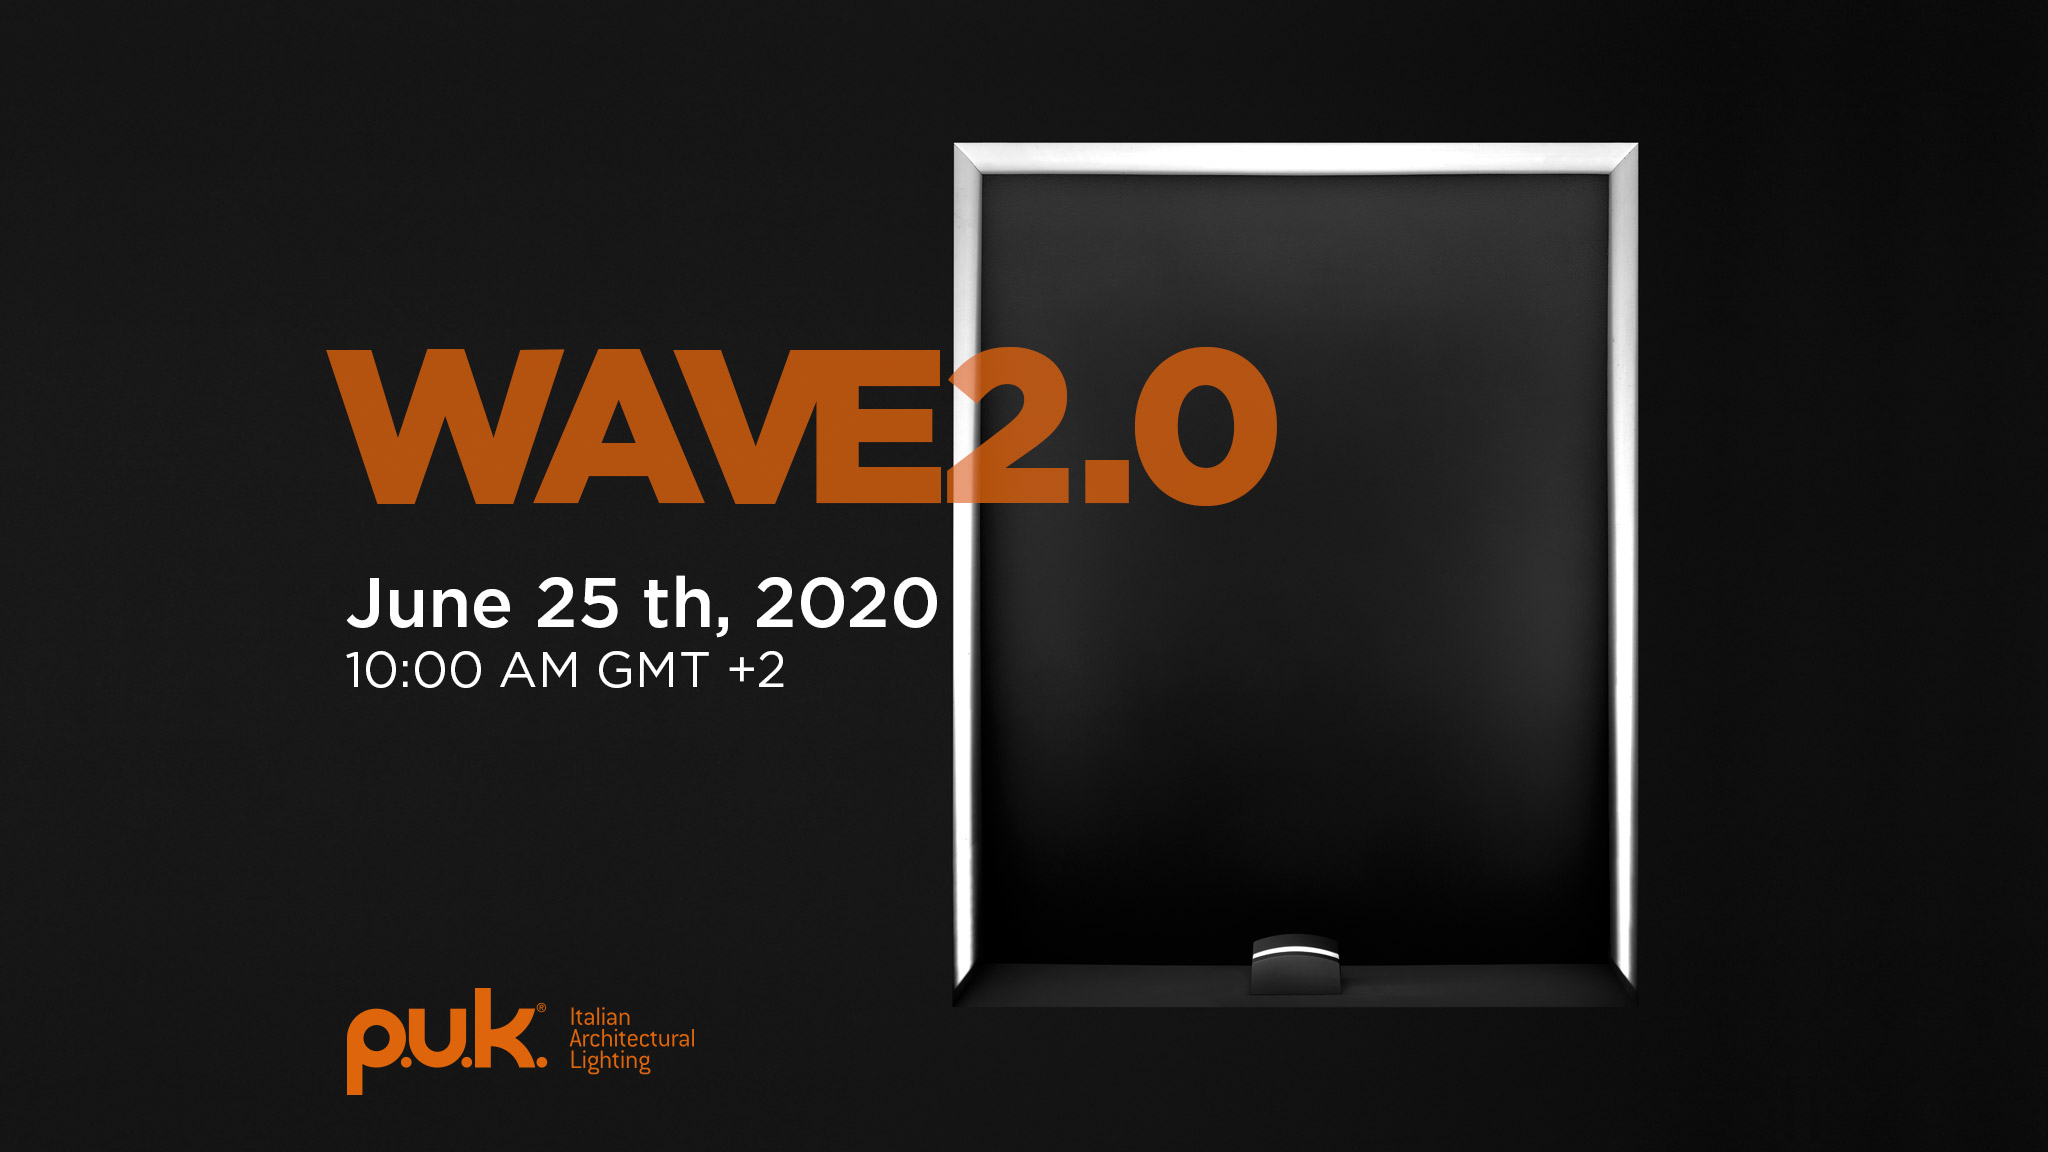 Introducing Wave 2.0: the updated surface mounted luminaire